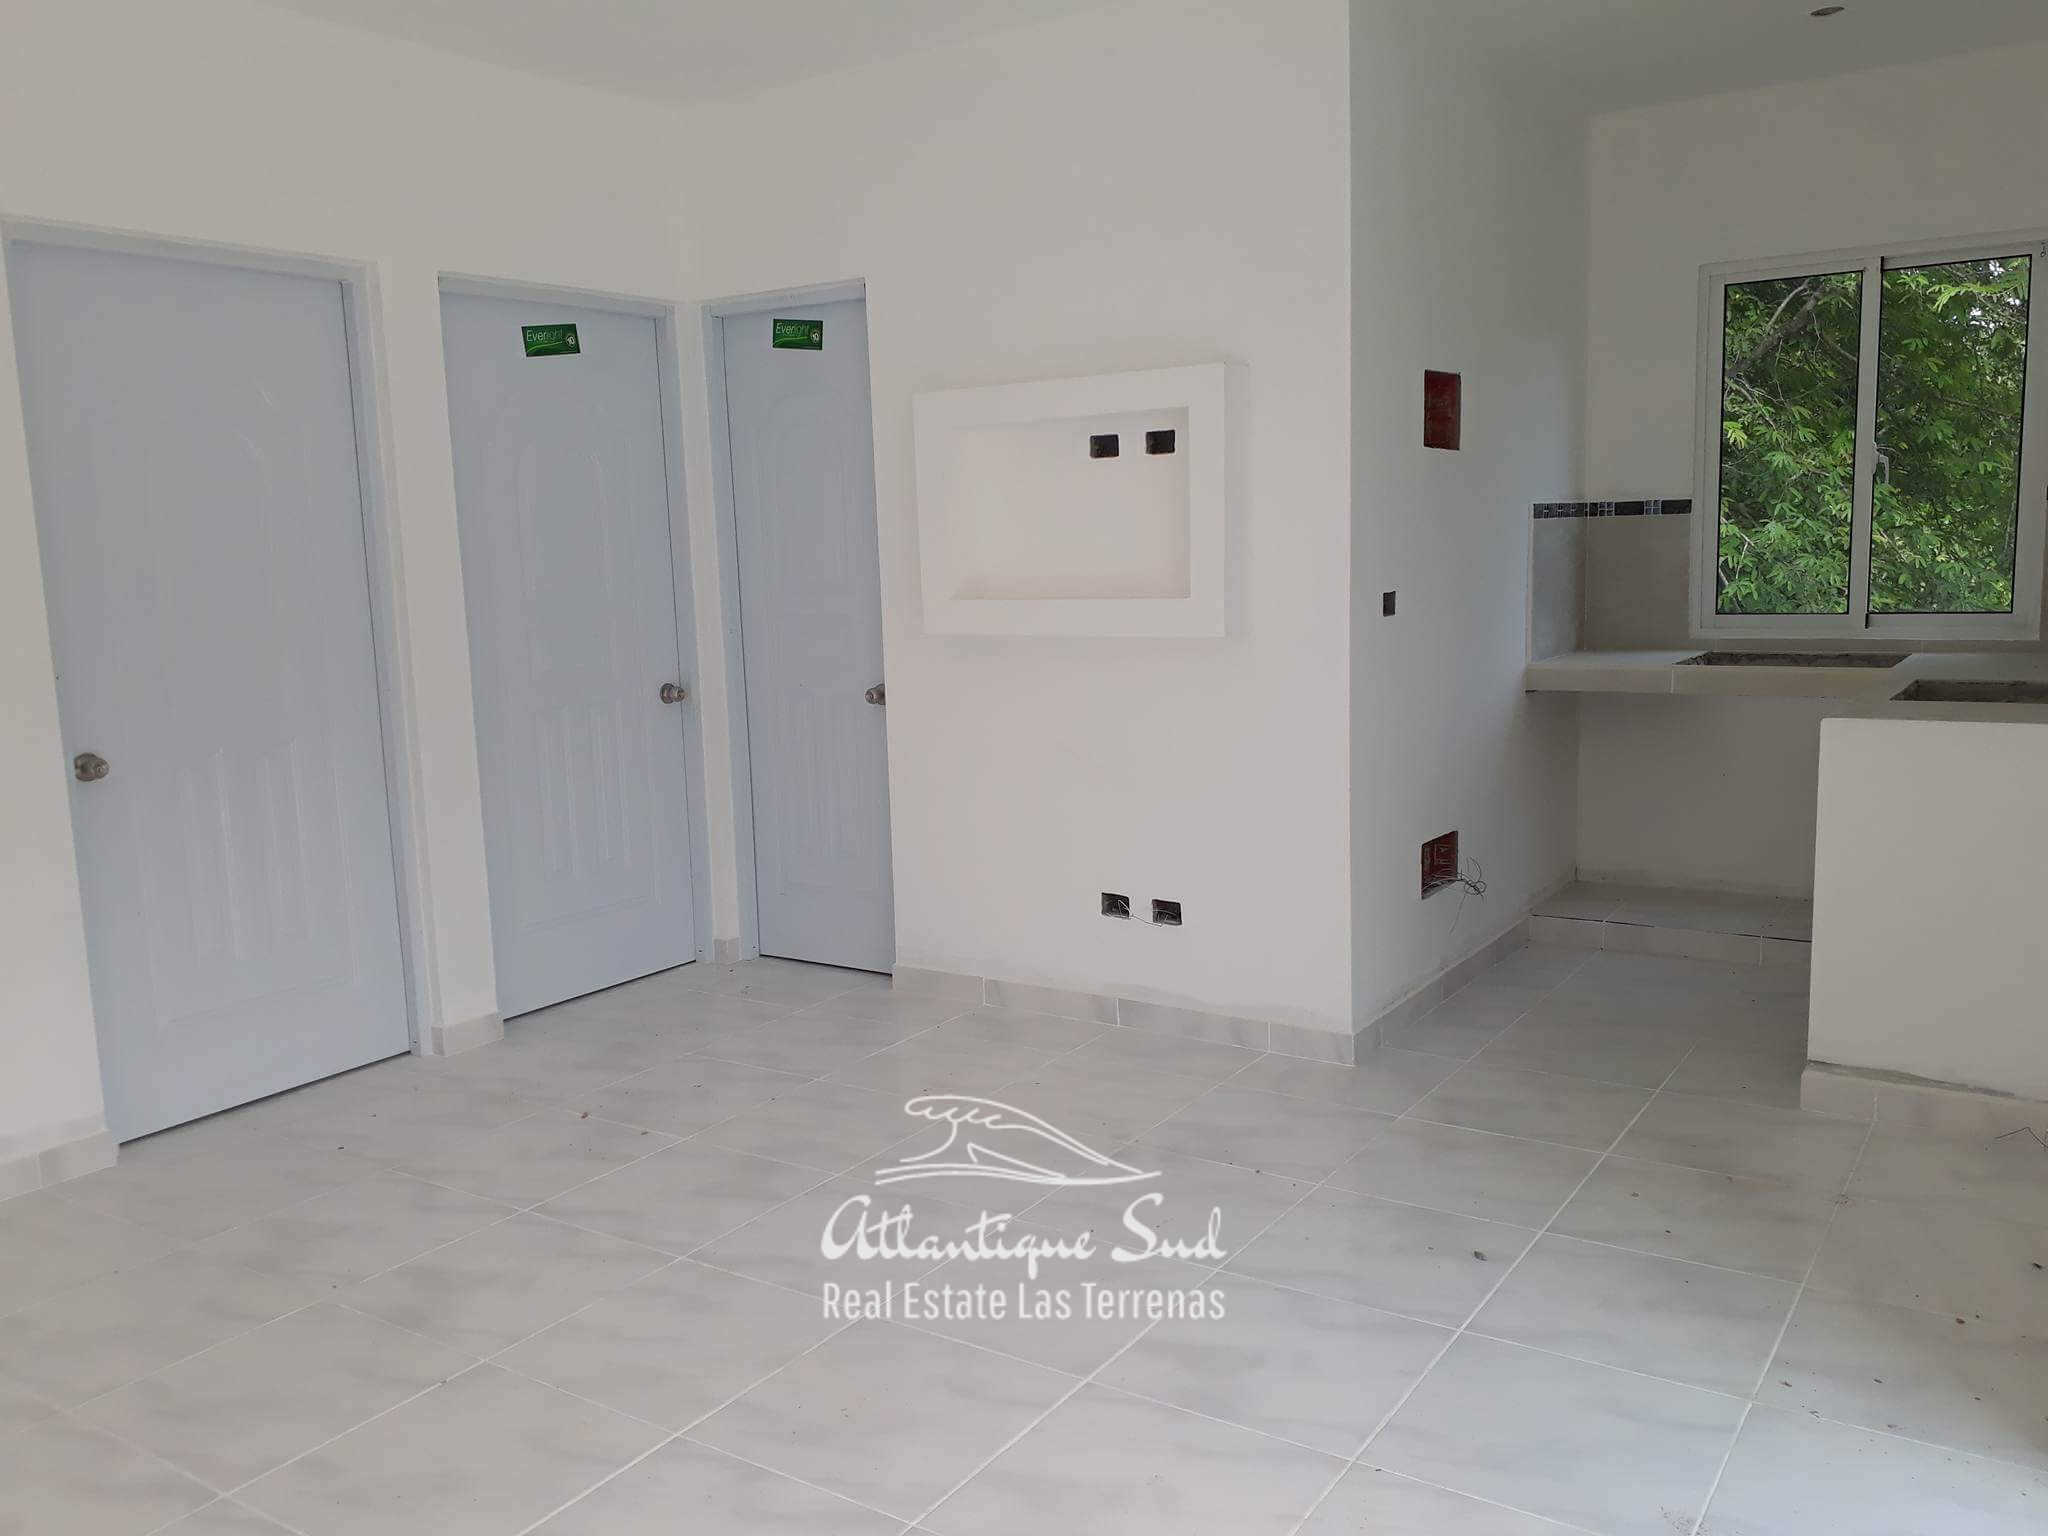 Small condominium for sale Las Terrenas 11.jpg